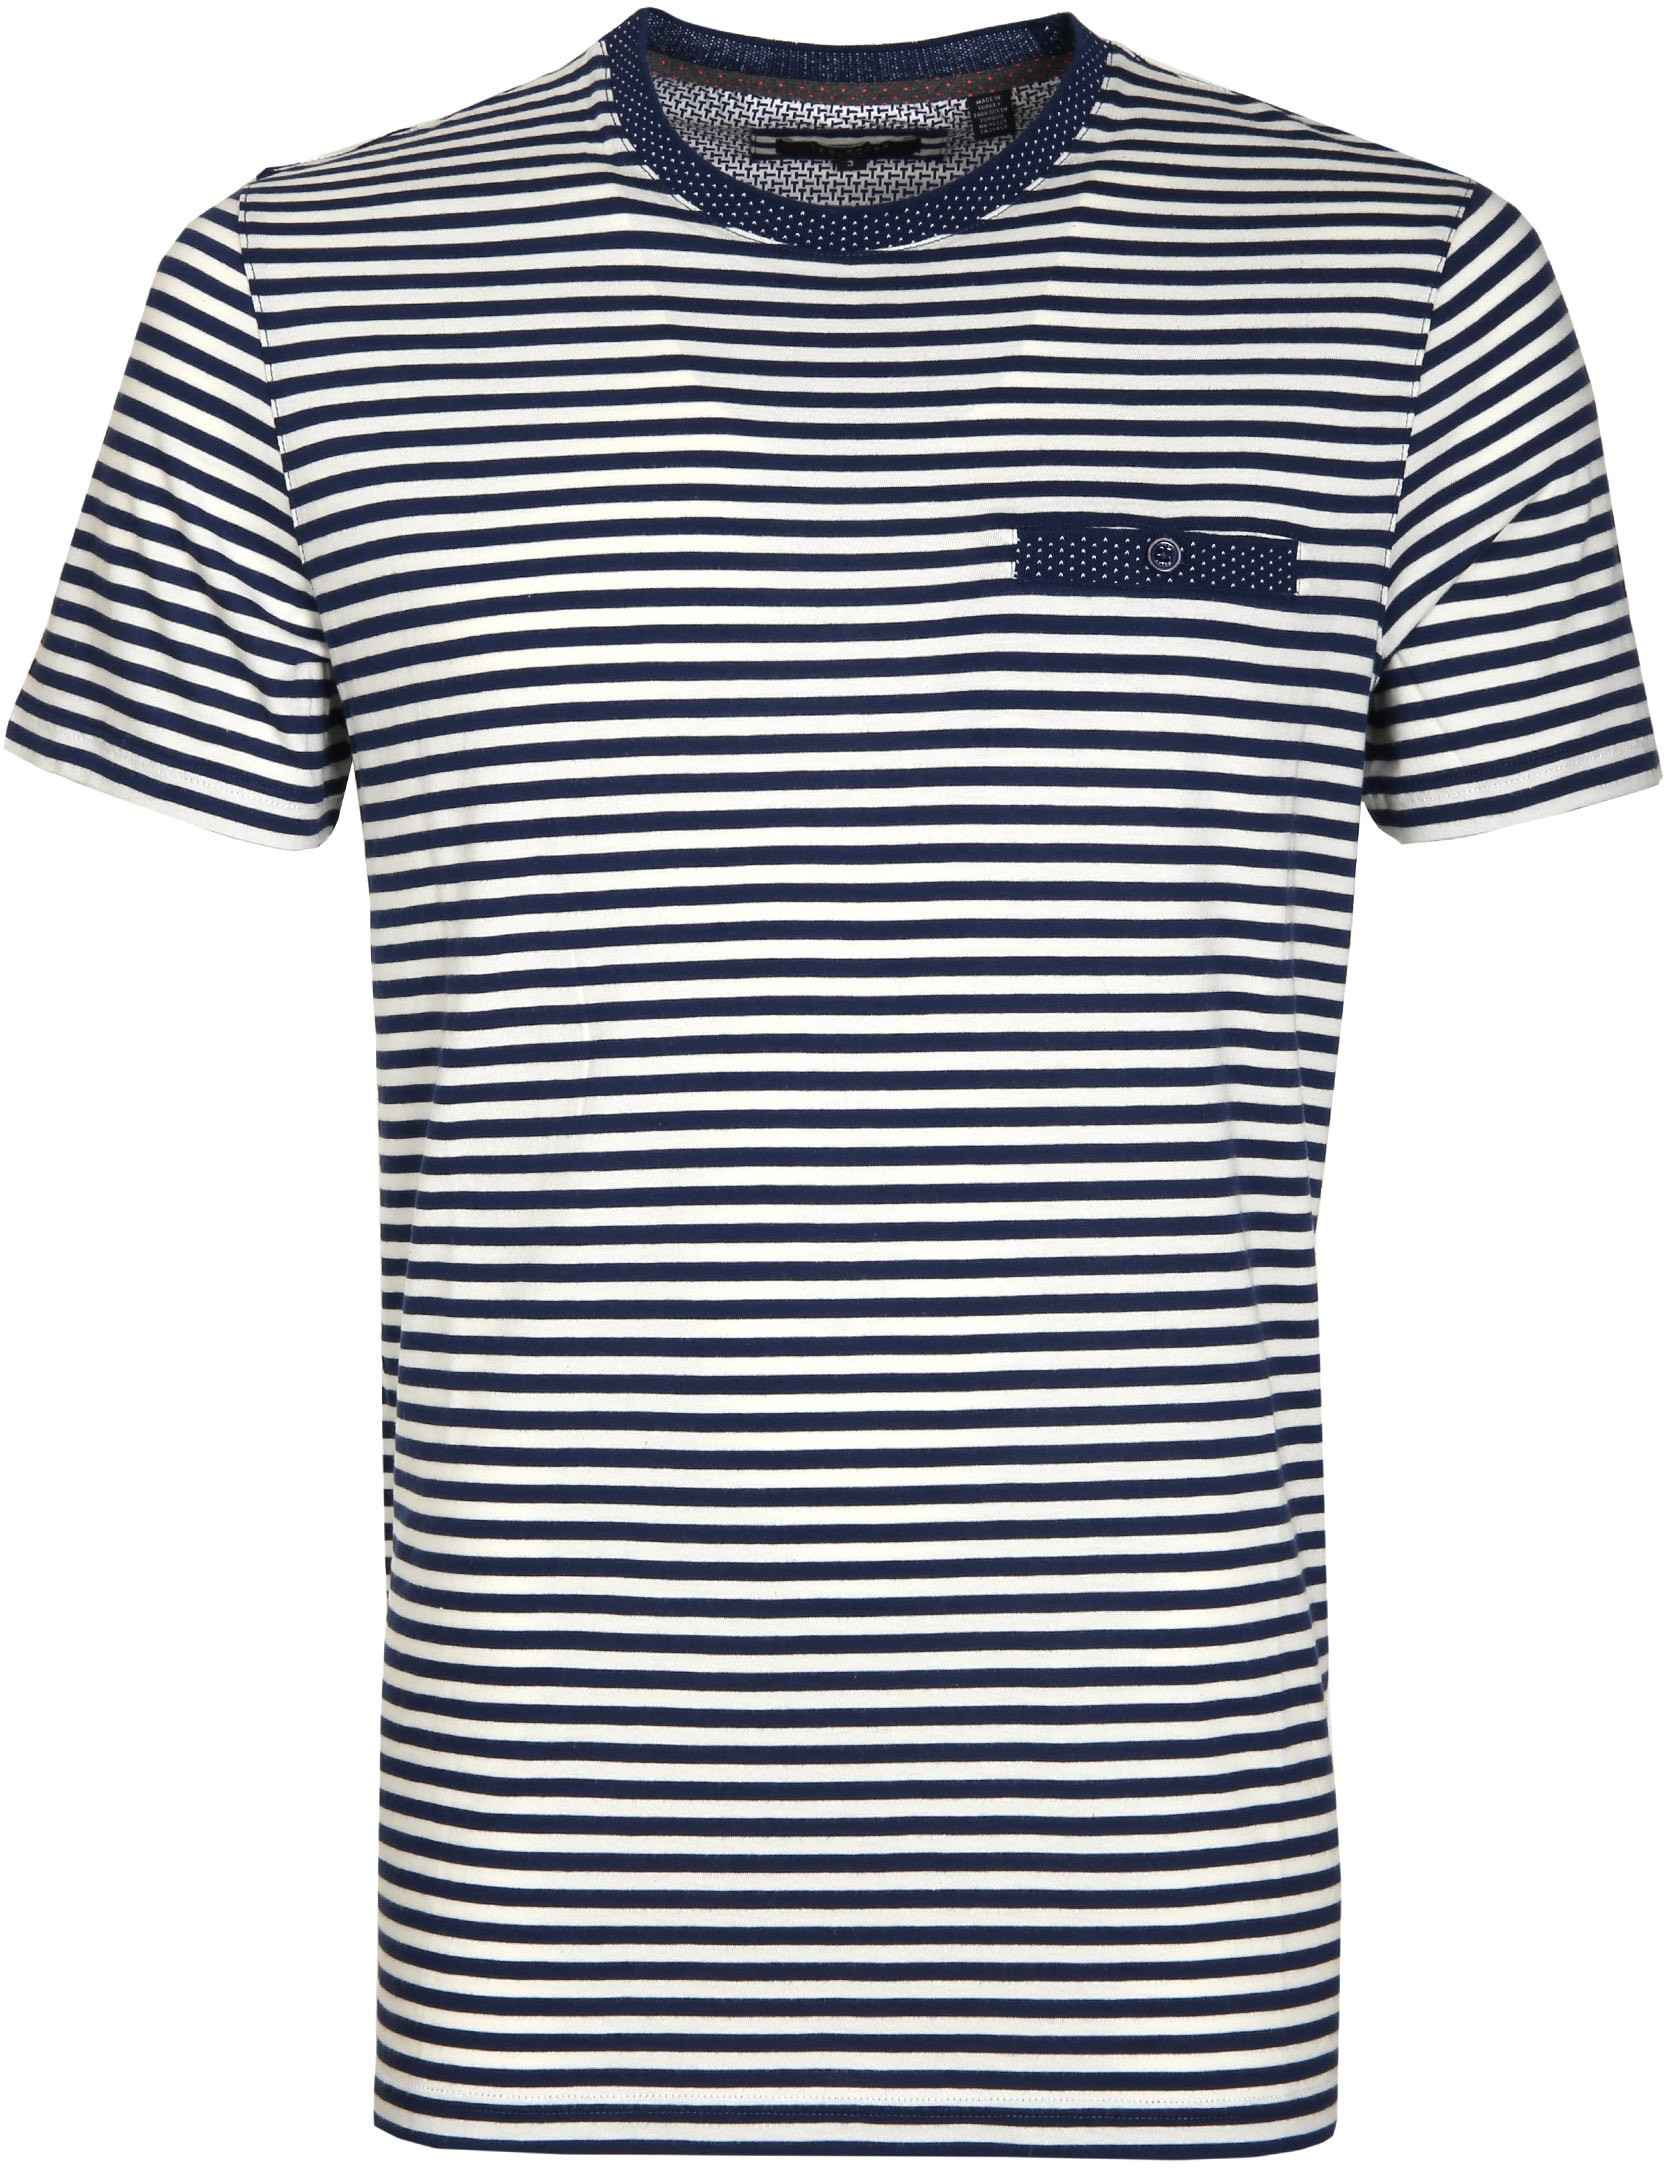 Ted Baker T-Shirt Stripe foto 0